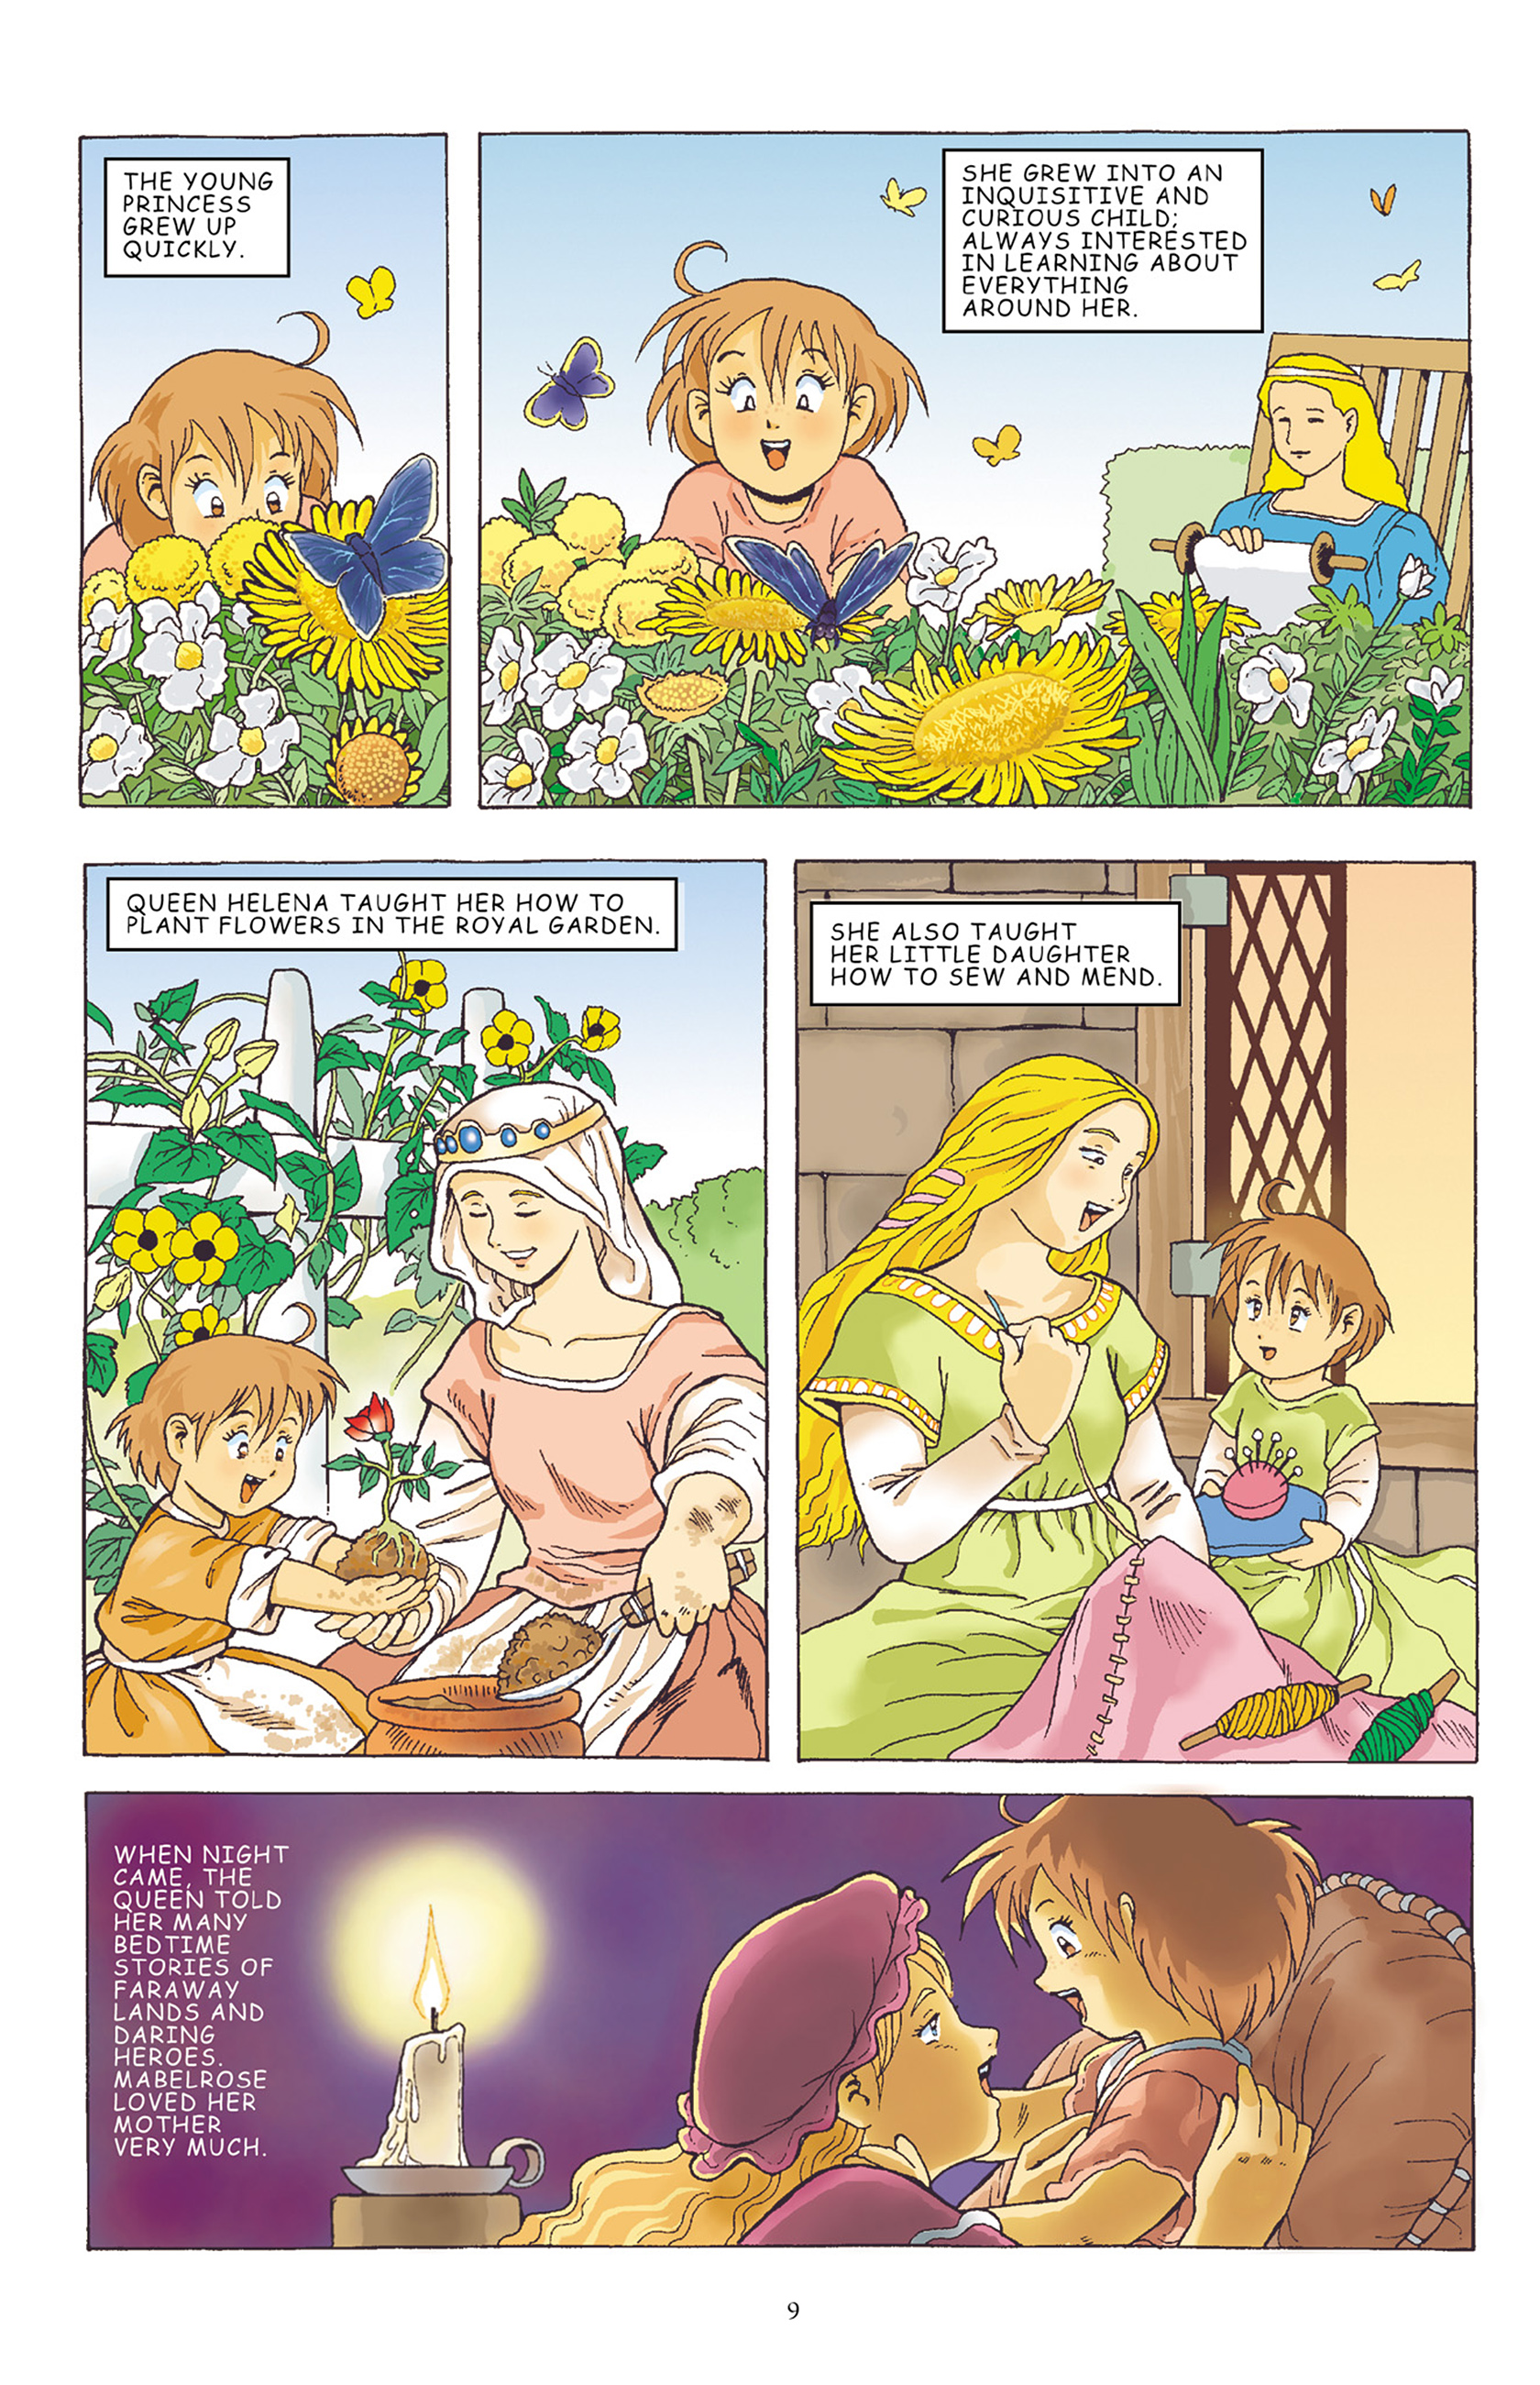 Read online Courageous Princess comic -  Issue # TPB 1 - 10